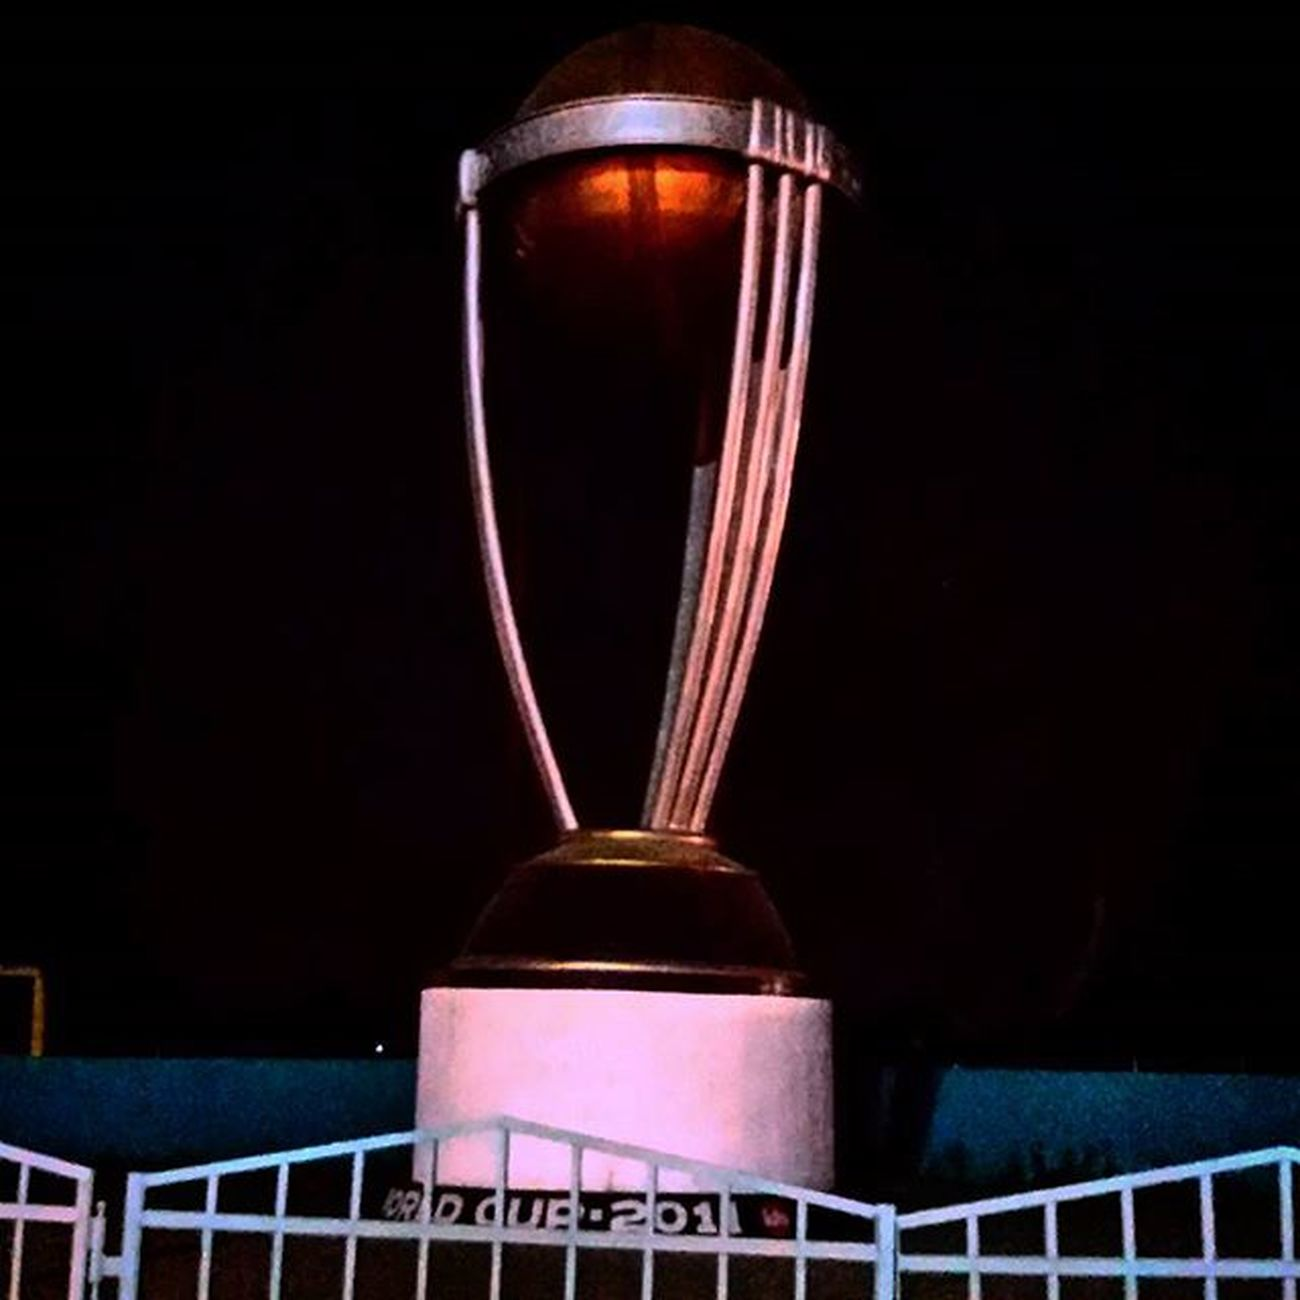 World Cup Choraha.... For achievement of Team India In World cup 2011 Firstlookindia Firstlook_india Indianphotographersclub Mobilephotography PhonePhotography Indian Indianphoto CameraMan Phonephoto Mobilecameraclub Mobile_perfection Mobilecamera Samsunggalaxygrand2 Streetphotography Streetphotographyindia